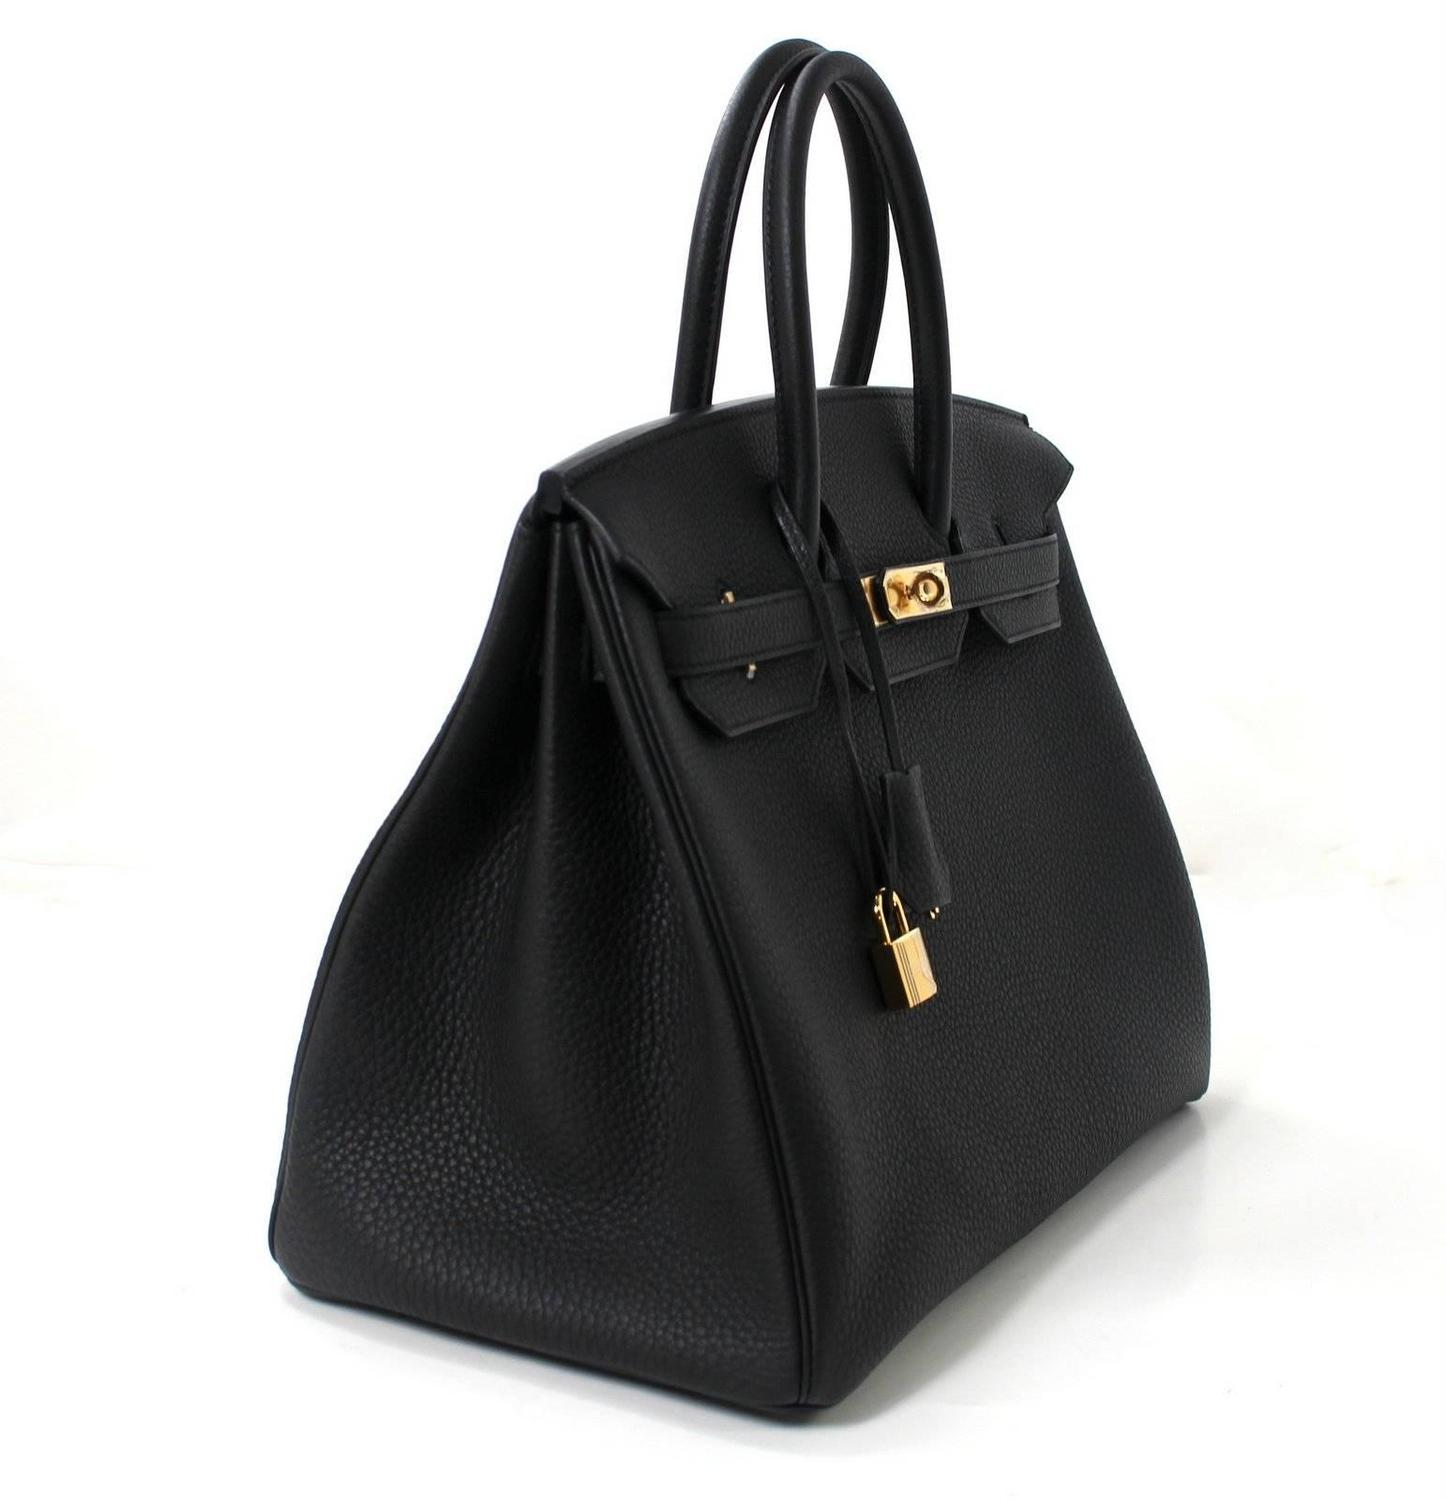 Hermes Black Birkin Bag- 35 cm, Togo Leather with Gold Hardware at ...